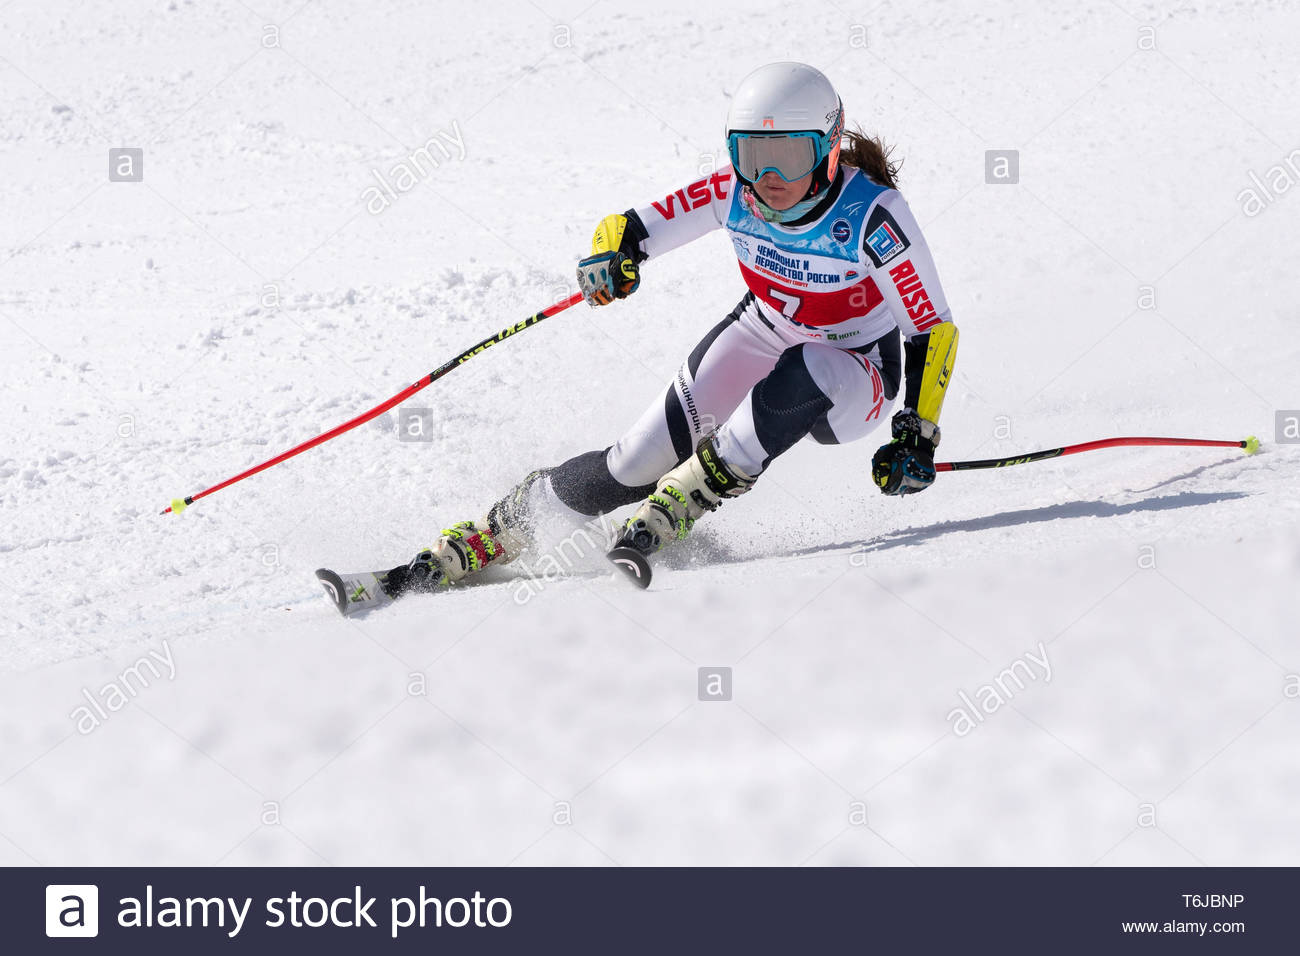 KAMCHATKA PENINSULA, RUSSIAN FEDERATION - APRIL 1, 2019: Russian Women's Alpine Skiing Championship, giant slalom. Mountain skier Popova Ekaterina (Ka - Stock Image